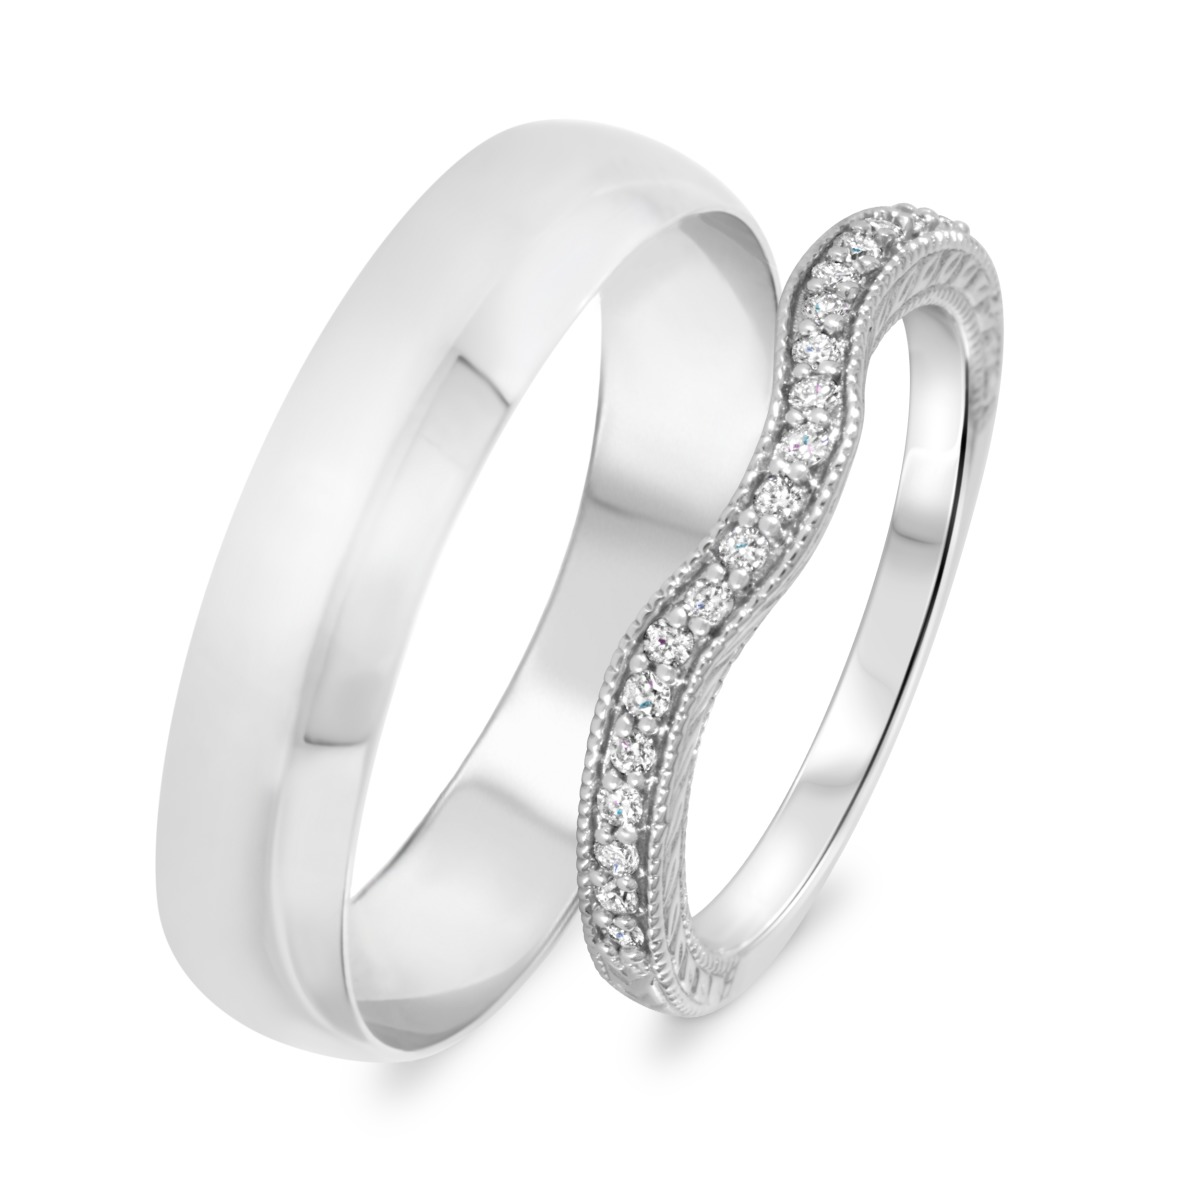 1/6 Carat T.W. Round Cut Diamond His And Hers Wedding Band Set 14K White Gold